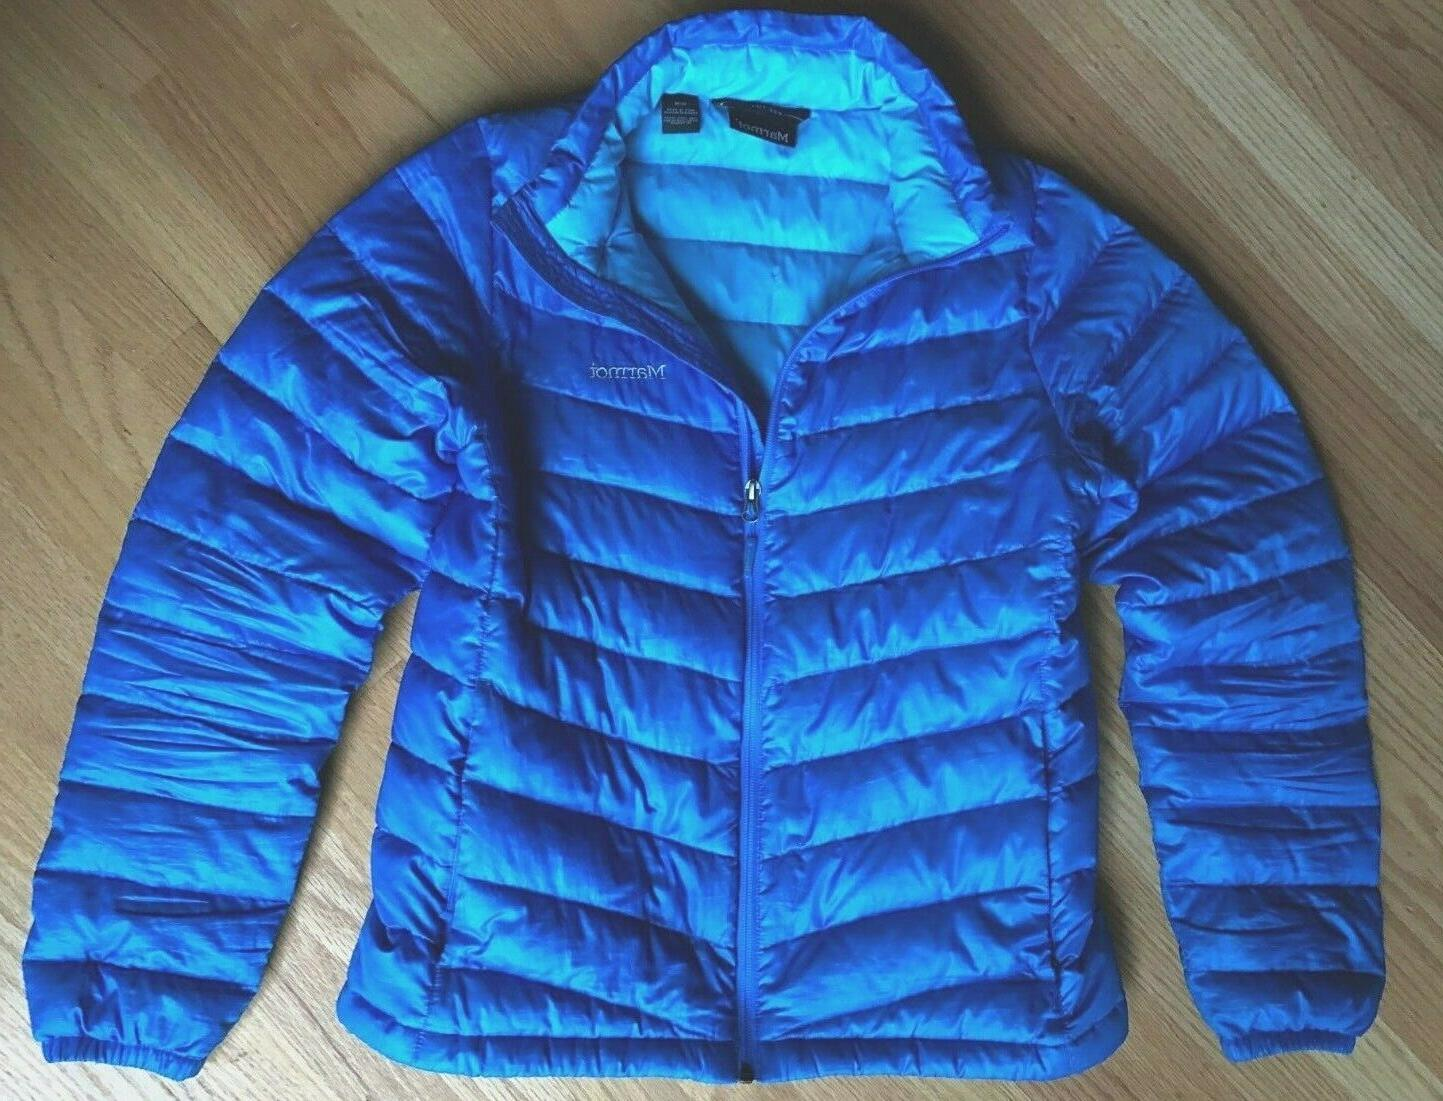 new jacket 800 fill goose down puffer